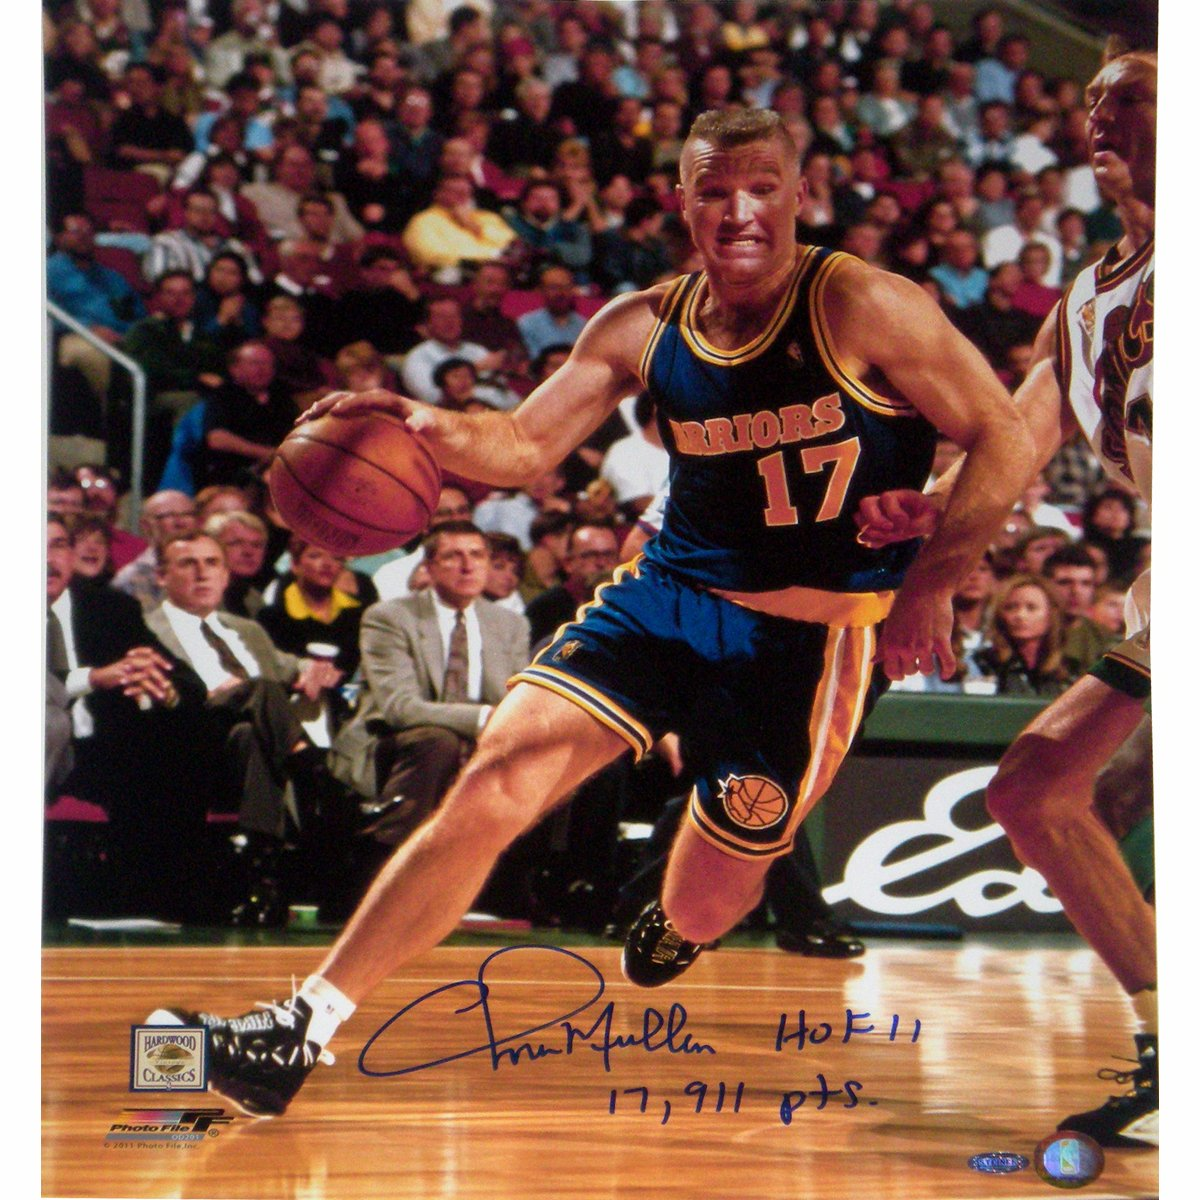 NBA Golden State Warriors Chris Mullin Drive to Basket Right Handed Vertical Photograph with HOF 11 17911 Points Inscription, 16x20-Inch